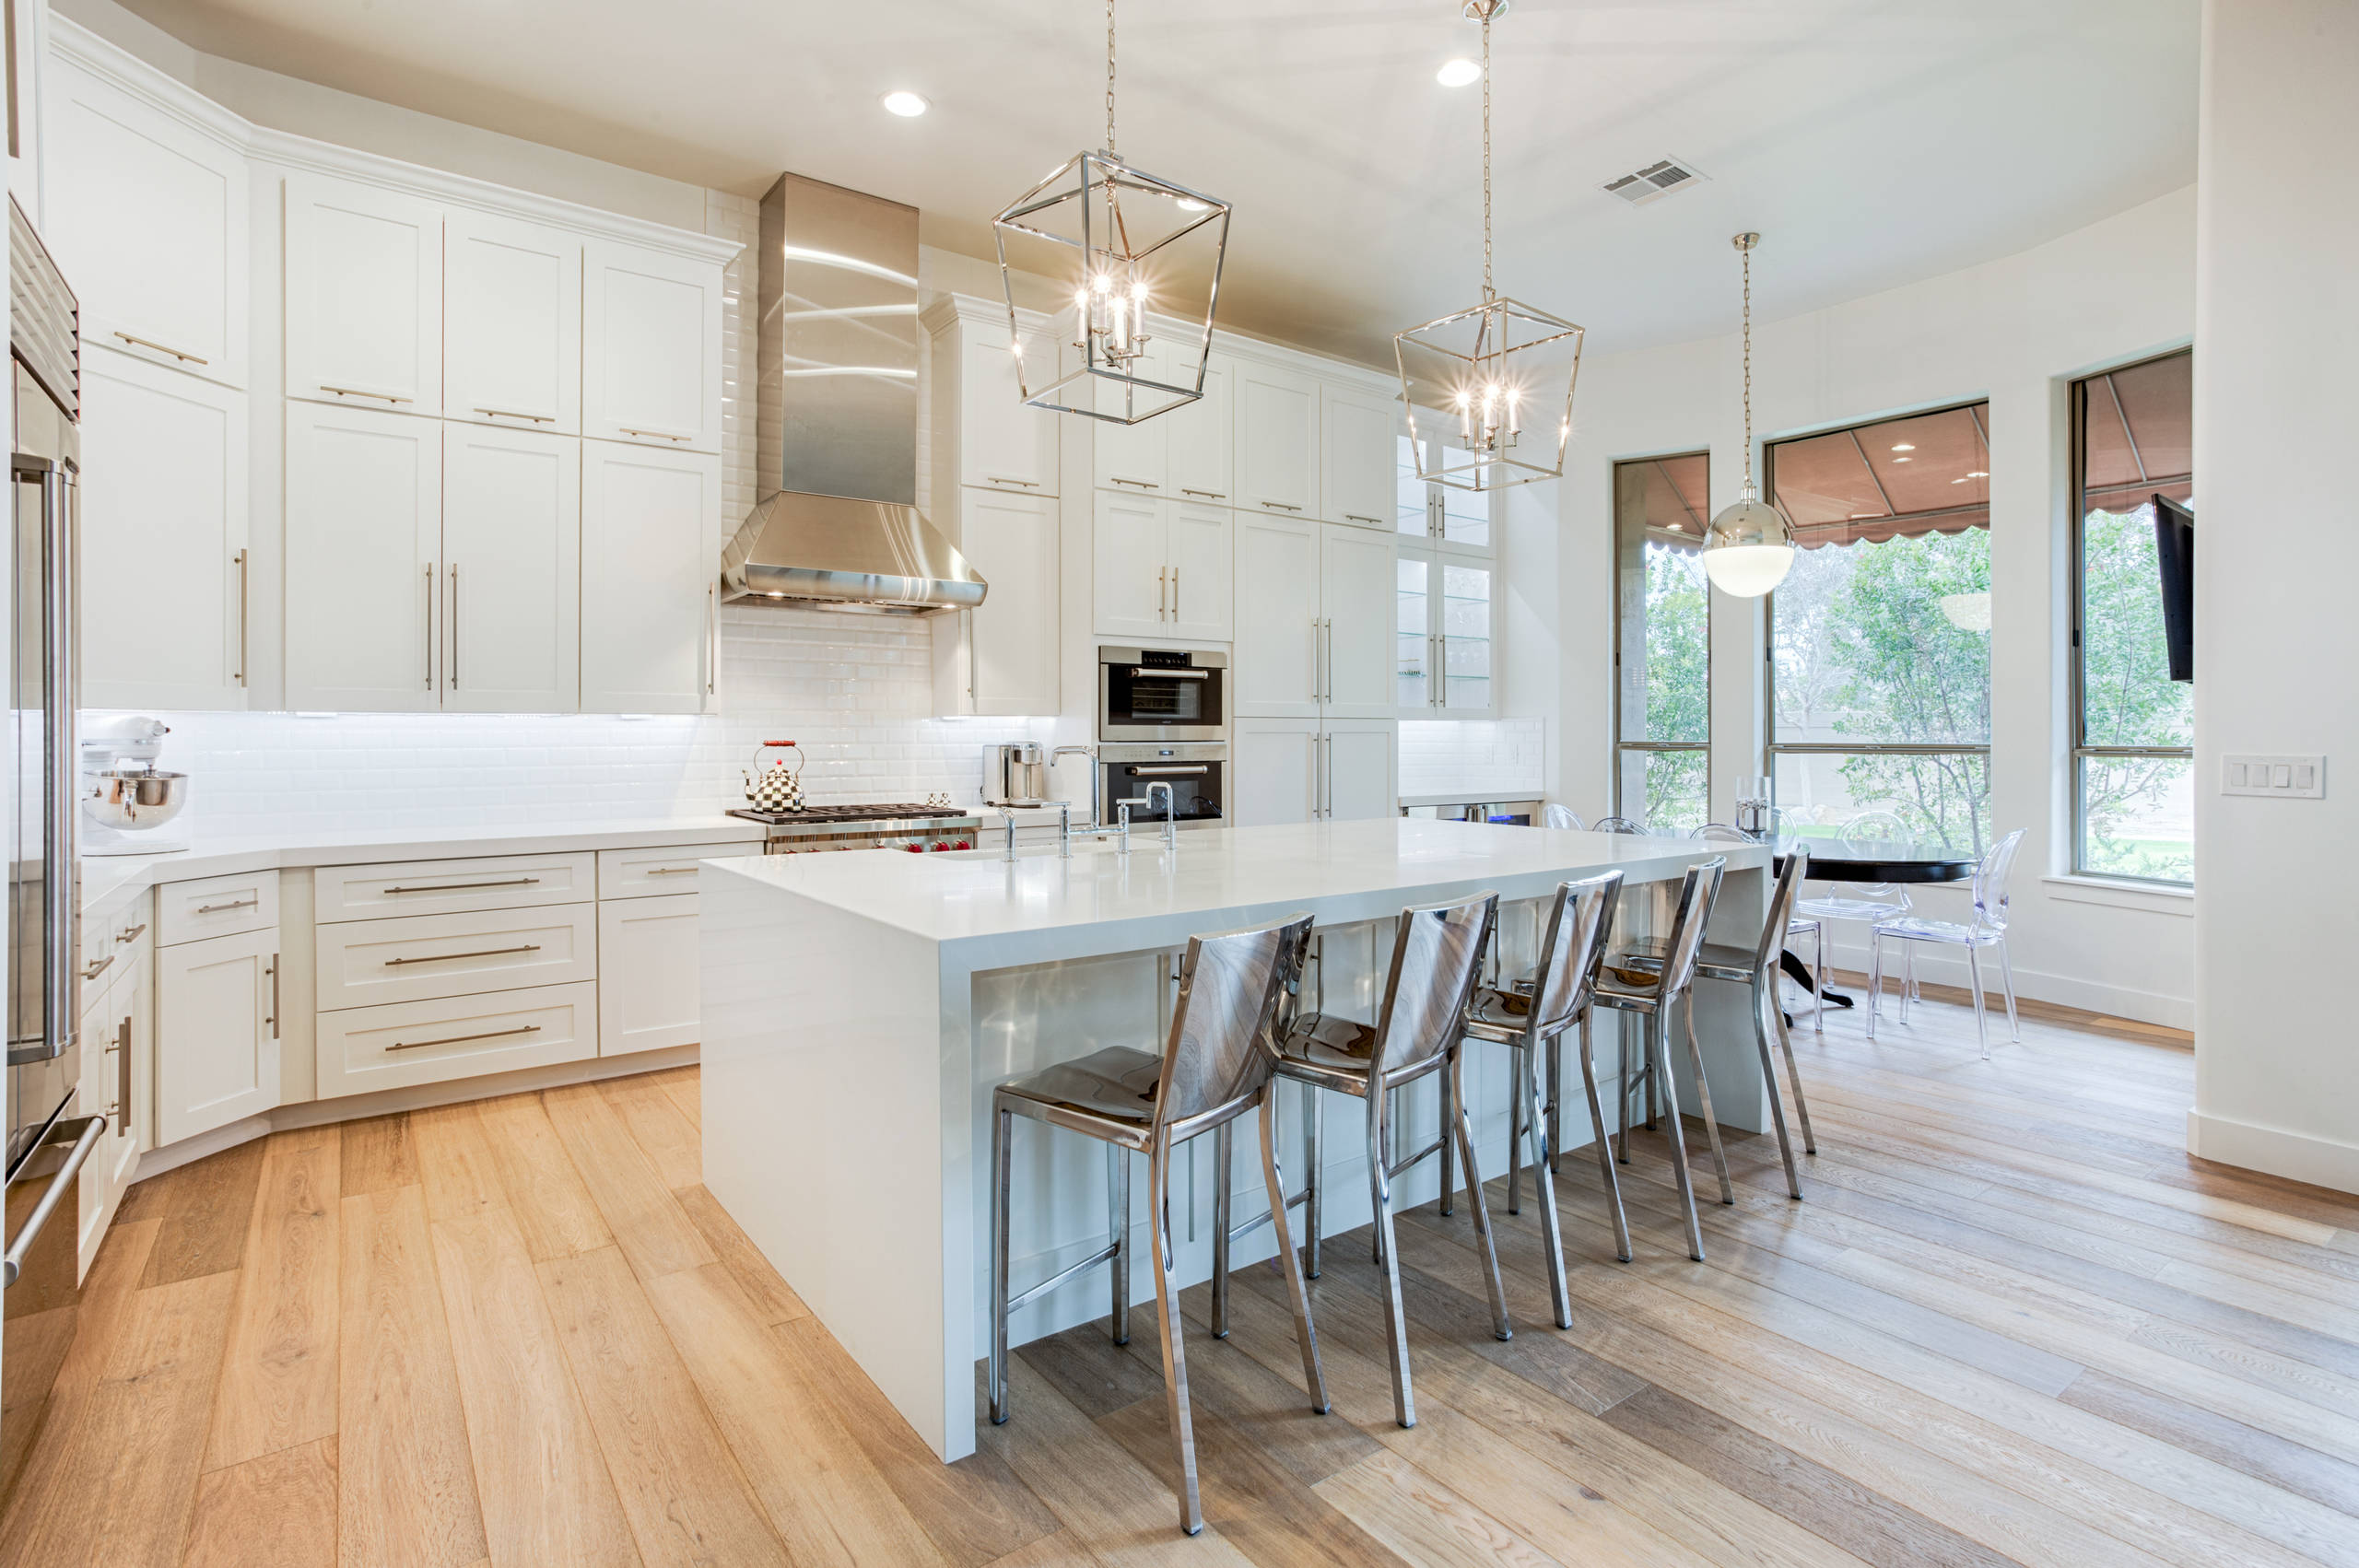 White Cabinets with Wood Floors Transitional Kitchen Hardwood Floors Light Wood Floors Under Cabinet Lighting